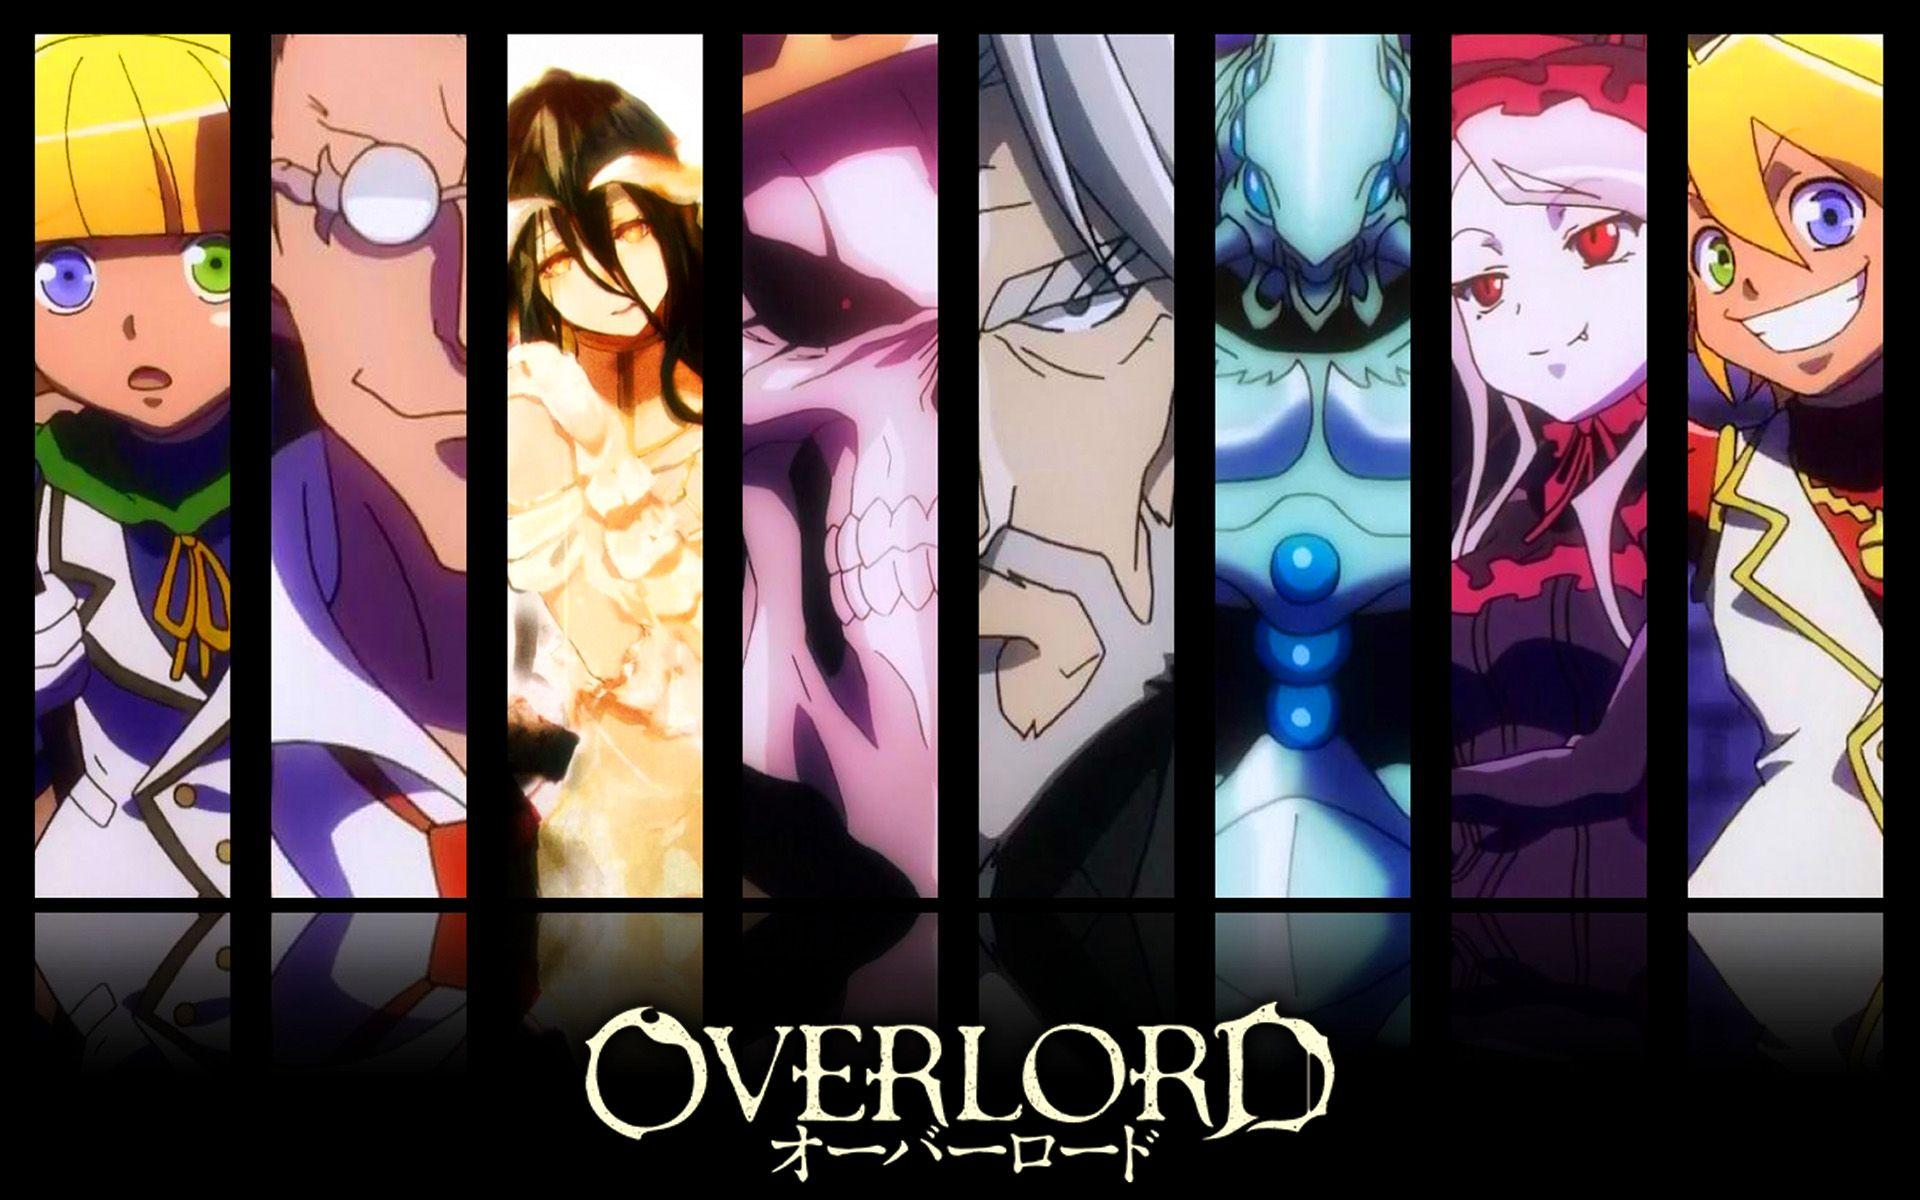 Overlord Season 4 Spoilers and Light Novel Connection